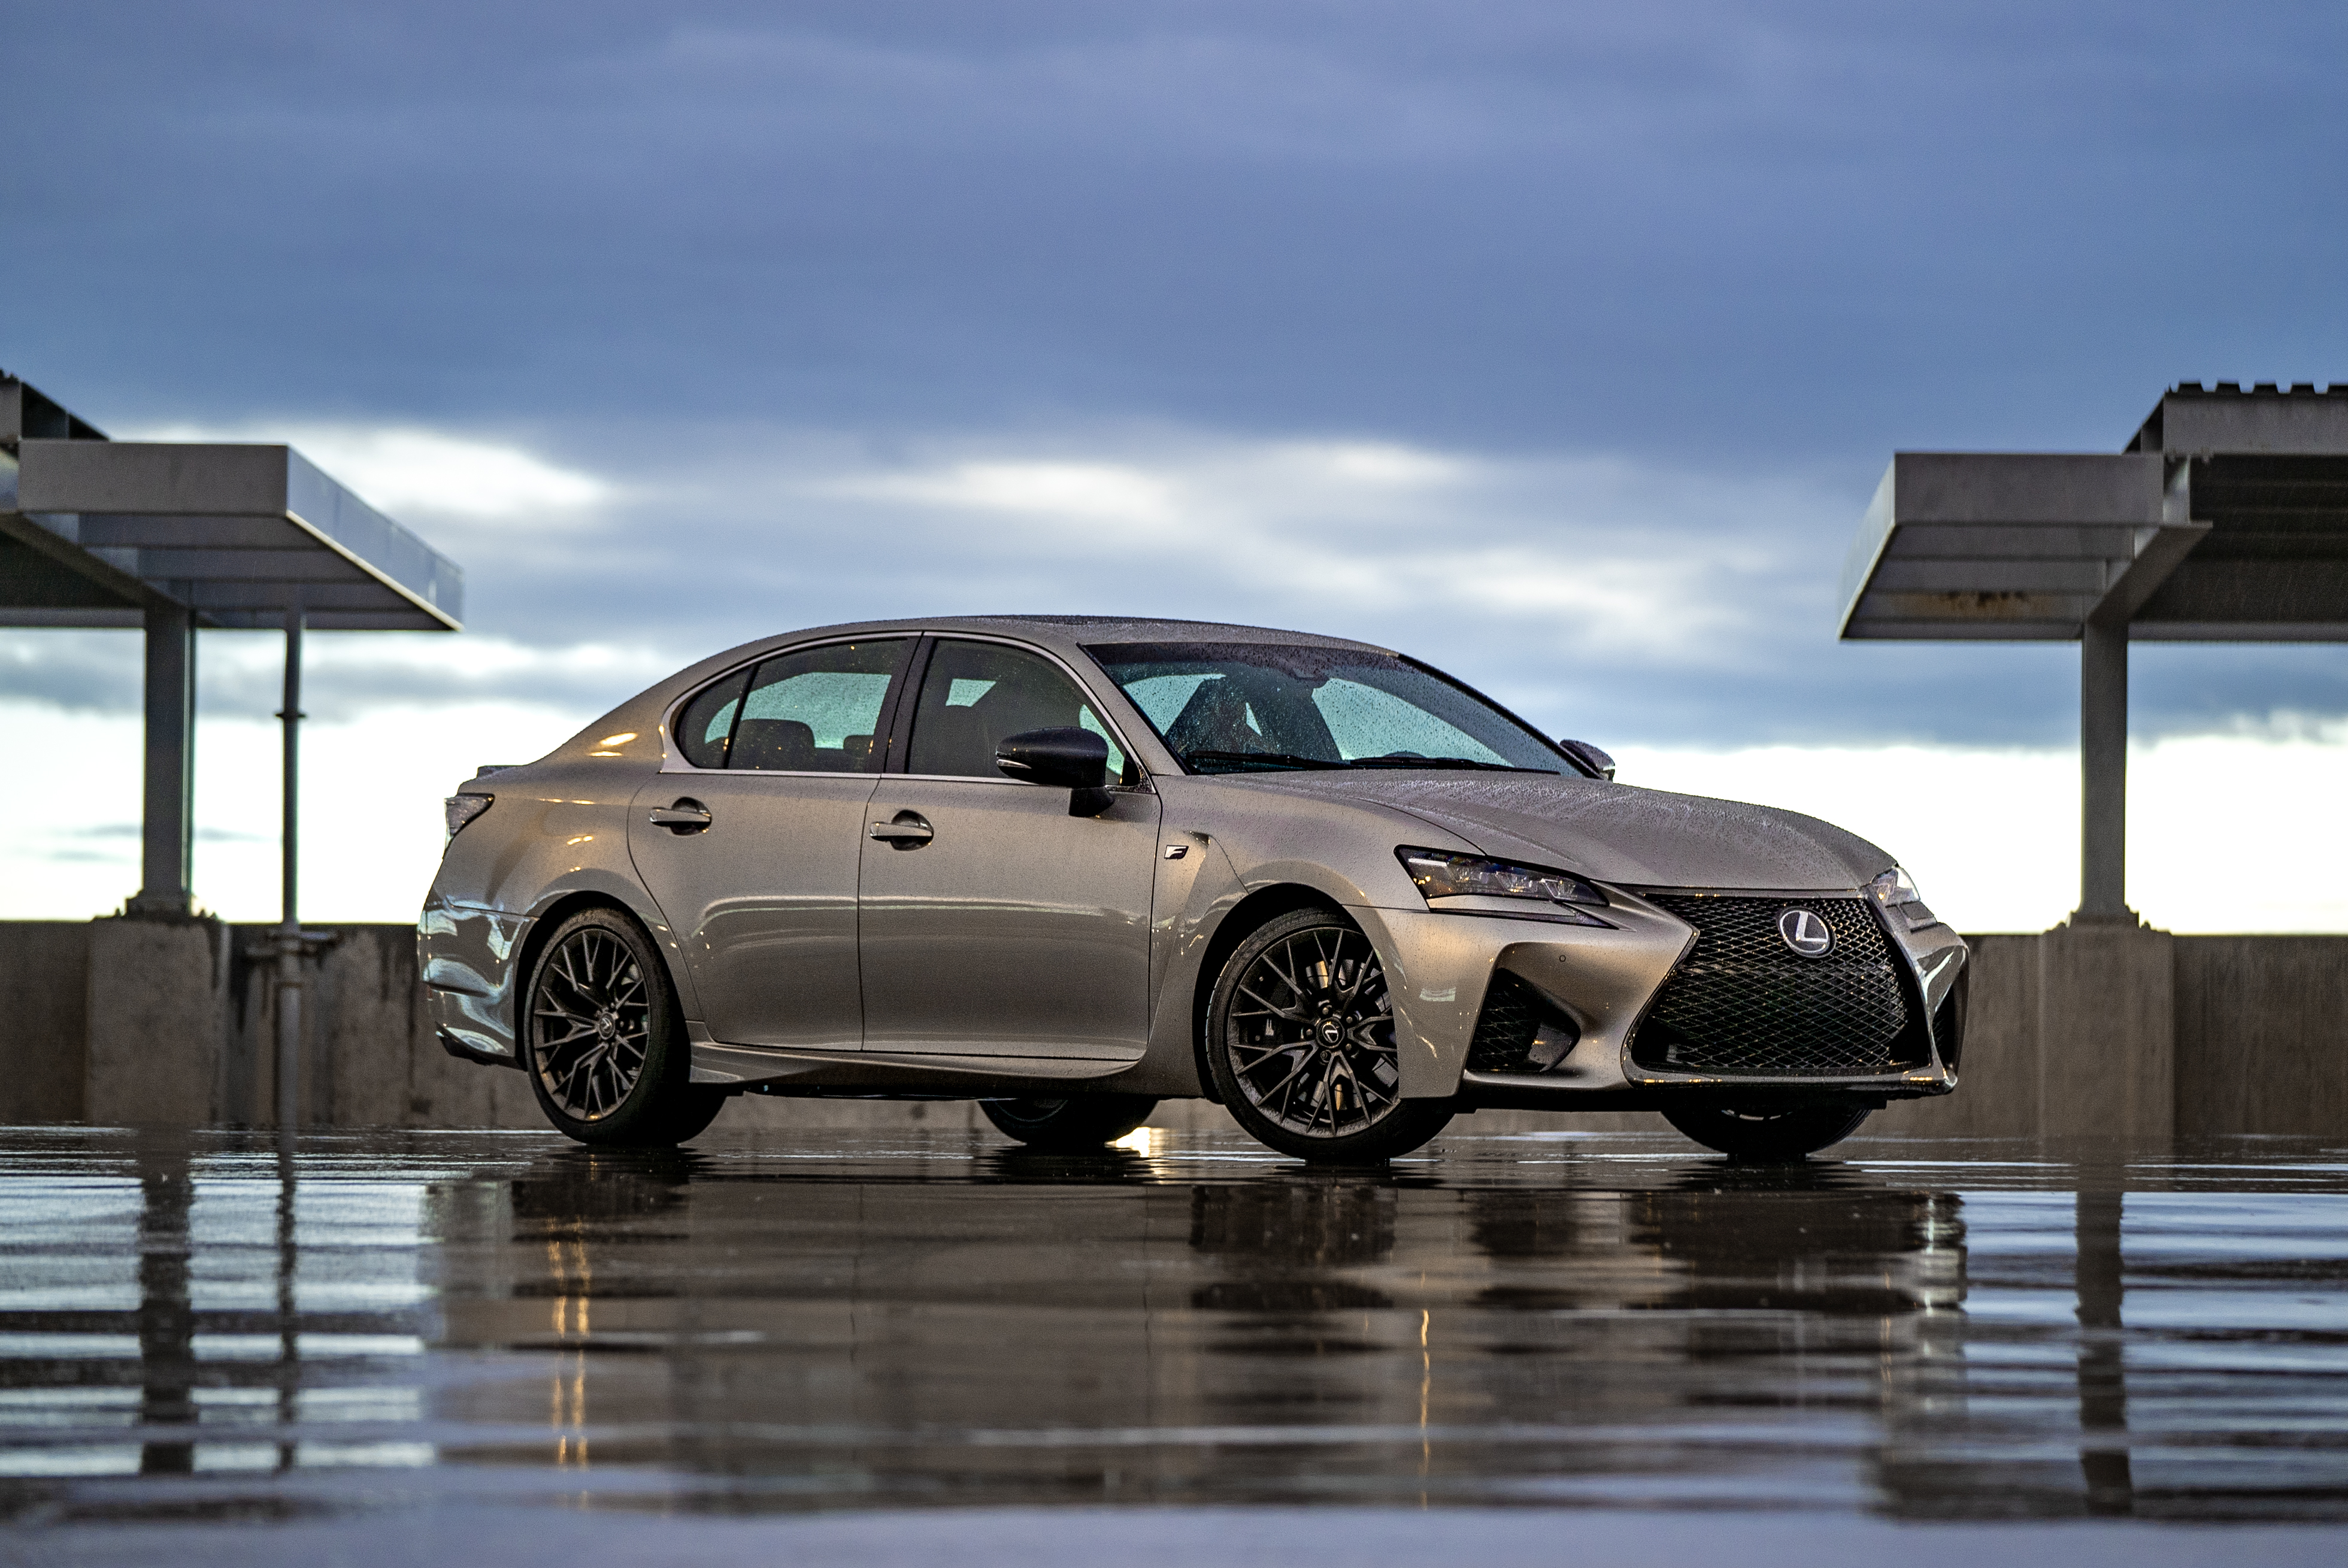 Lexus GS F features the same 5.0-liter V8 as the RC F coupe